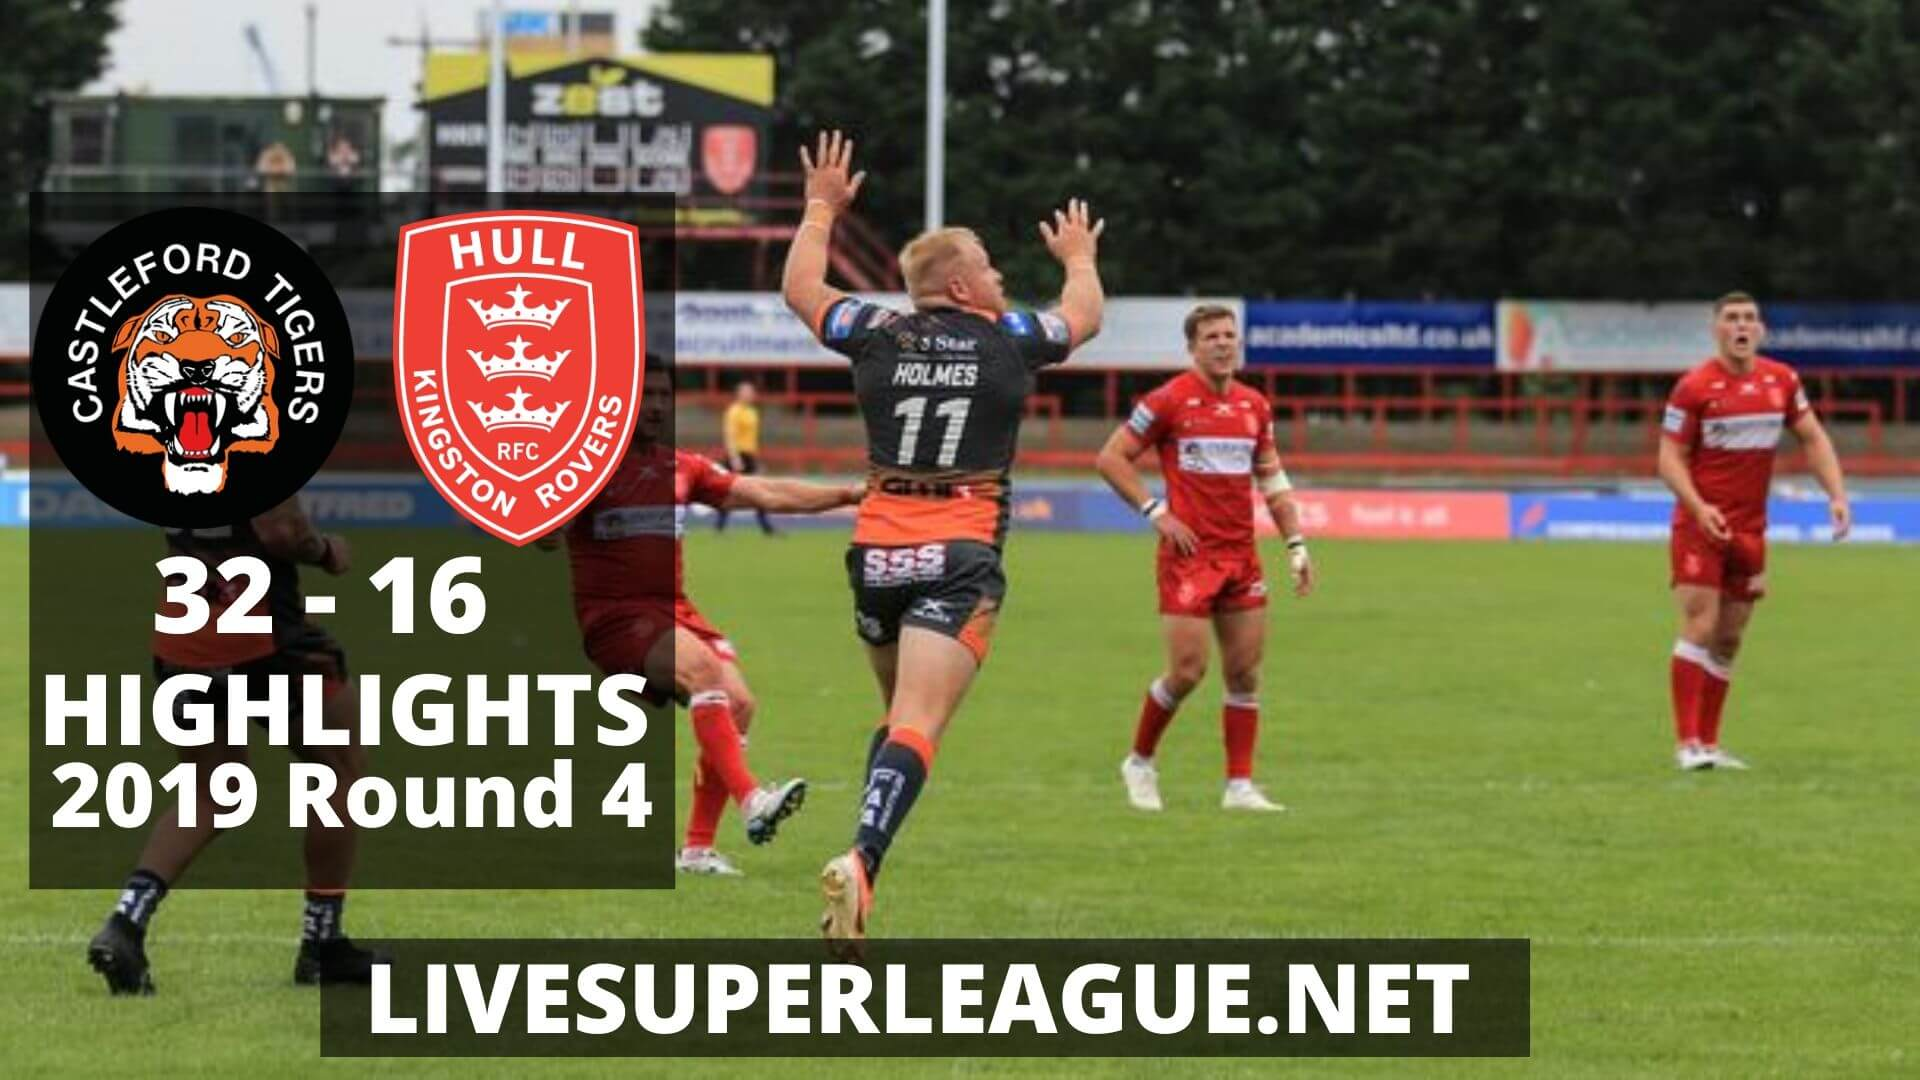 Castleford Tigers Vs Hull Kingston Rovers Highlights 2019 Round 4